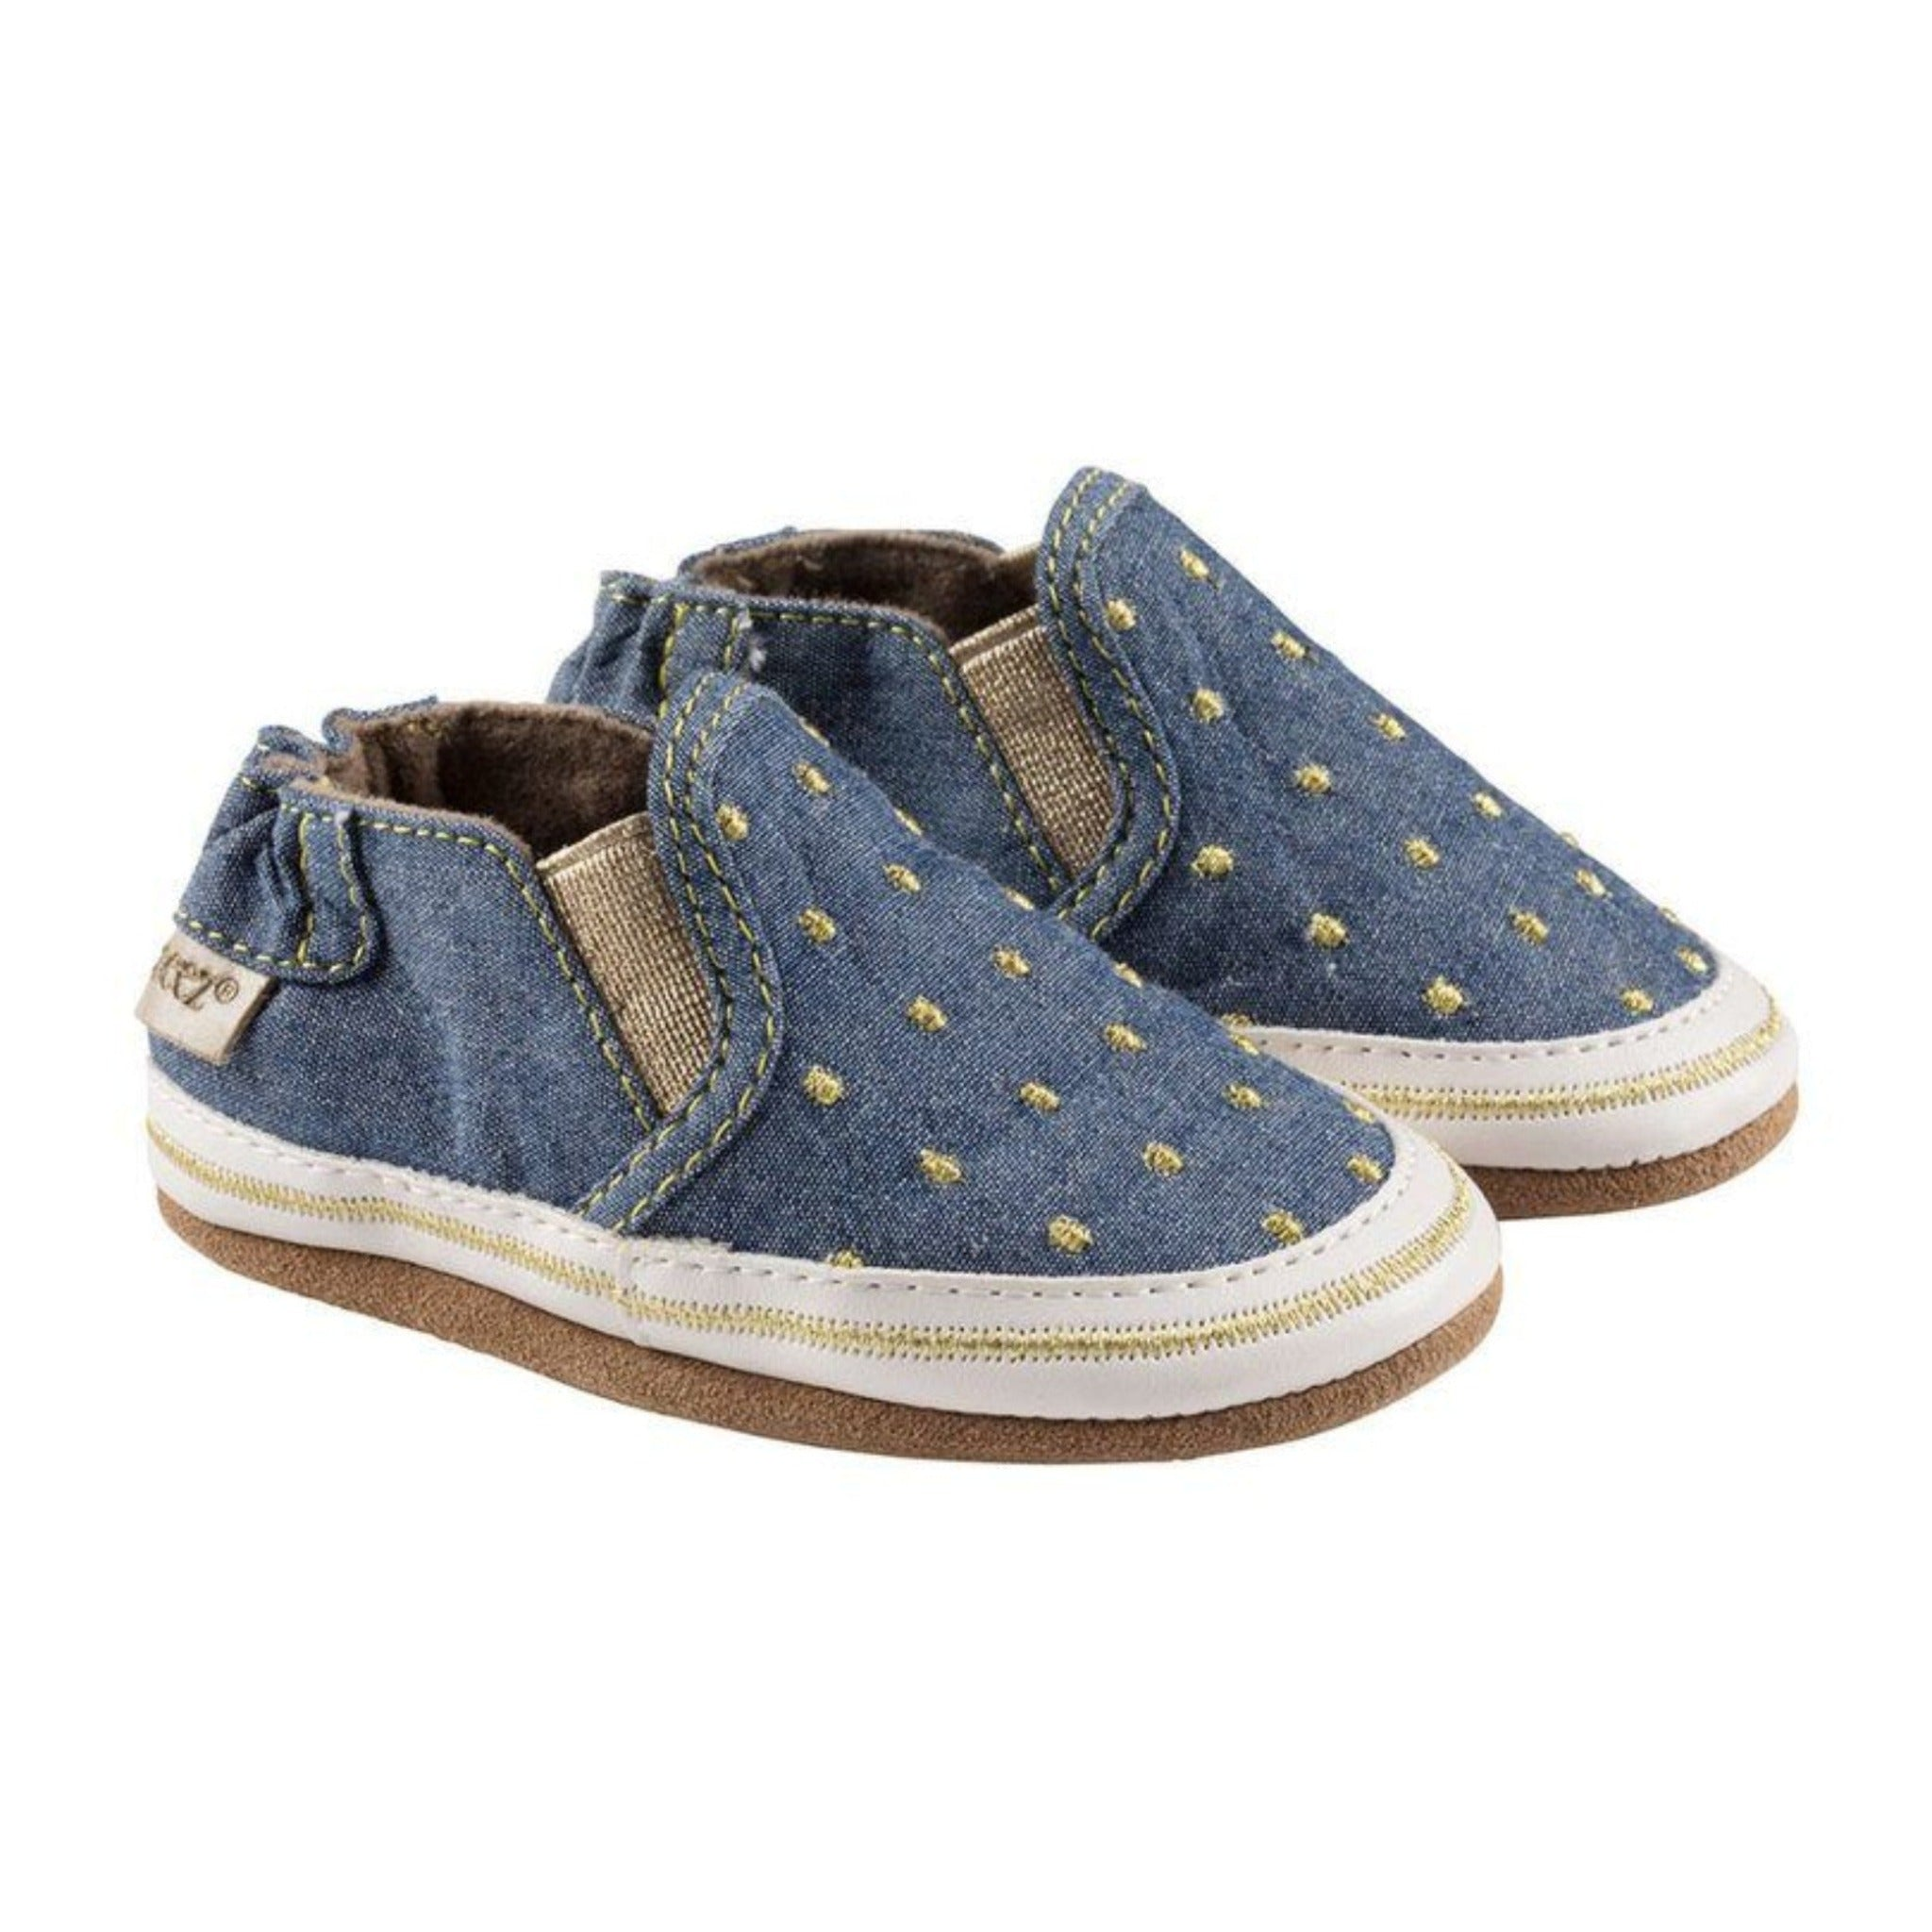 Robeez denim girls training shoes